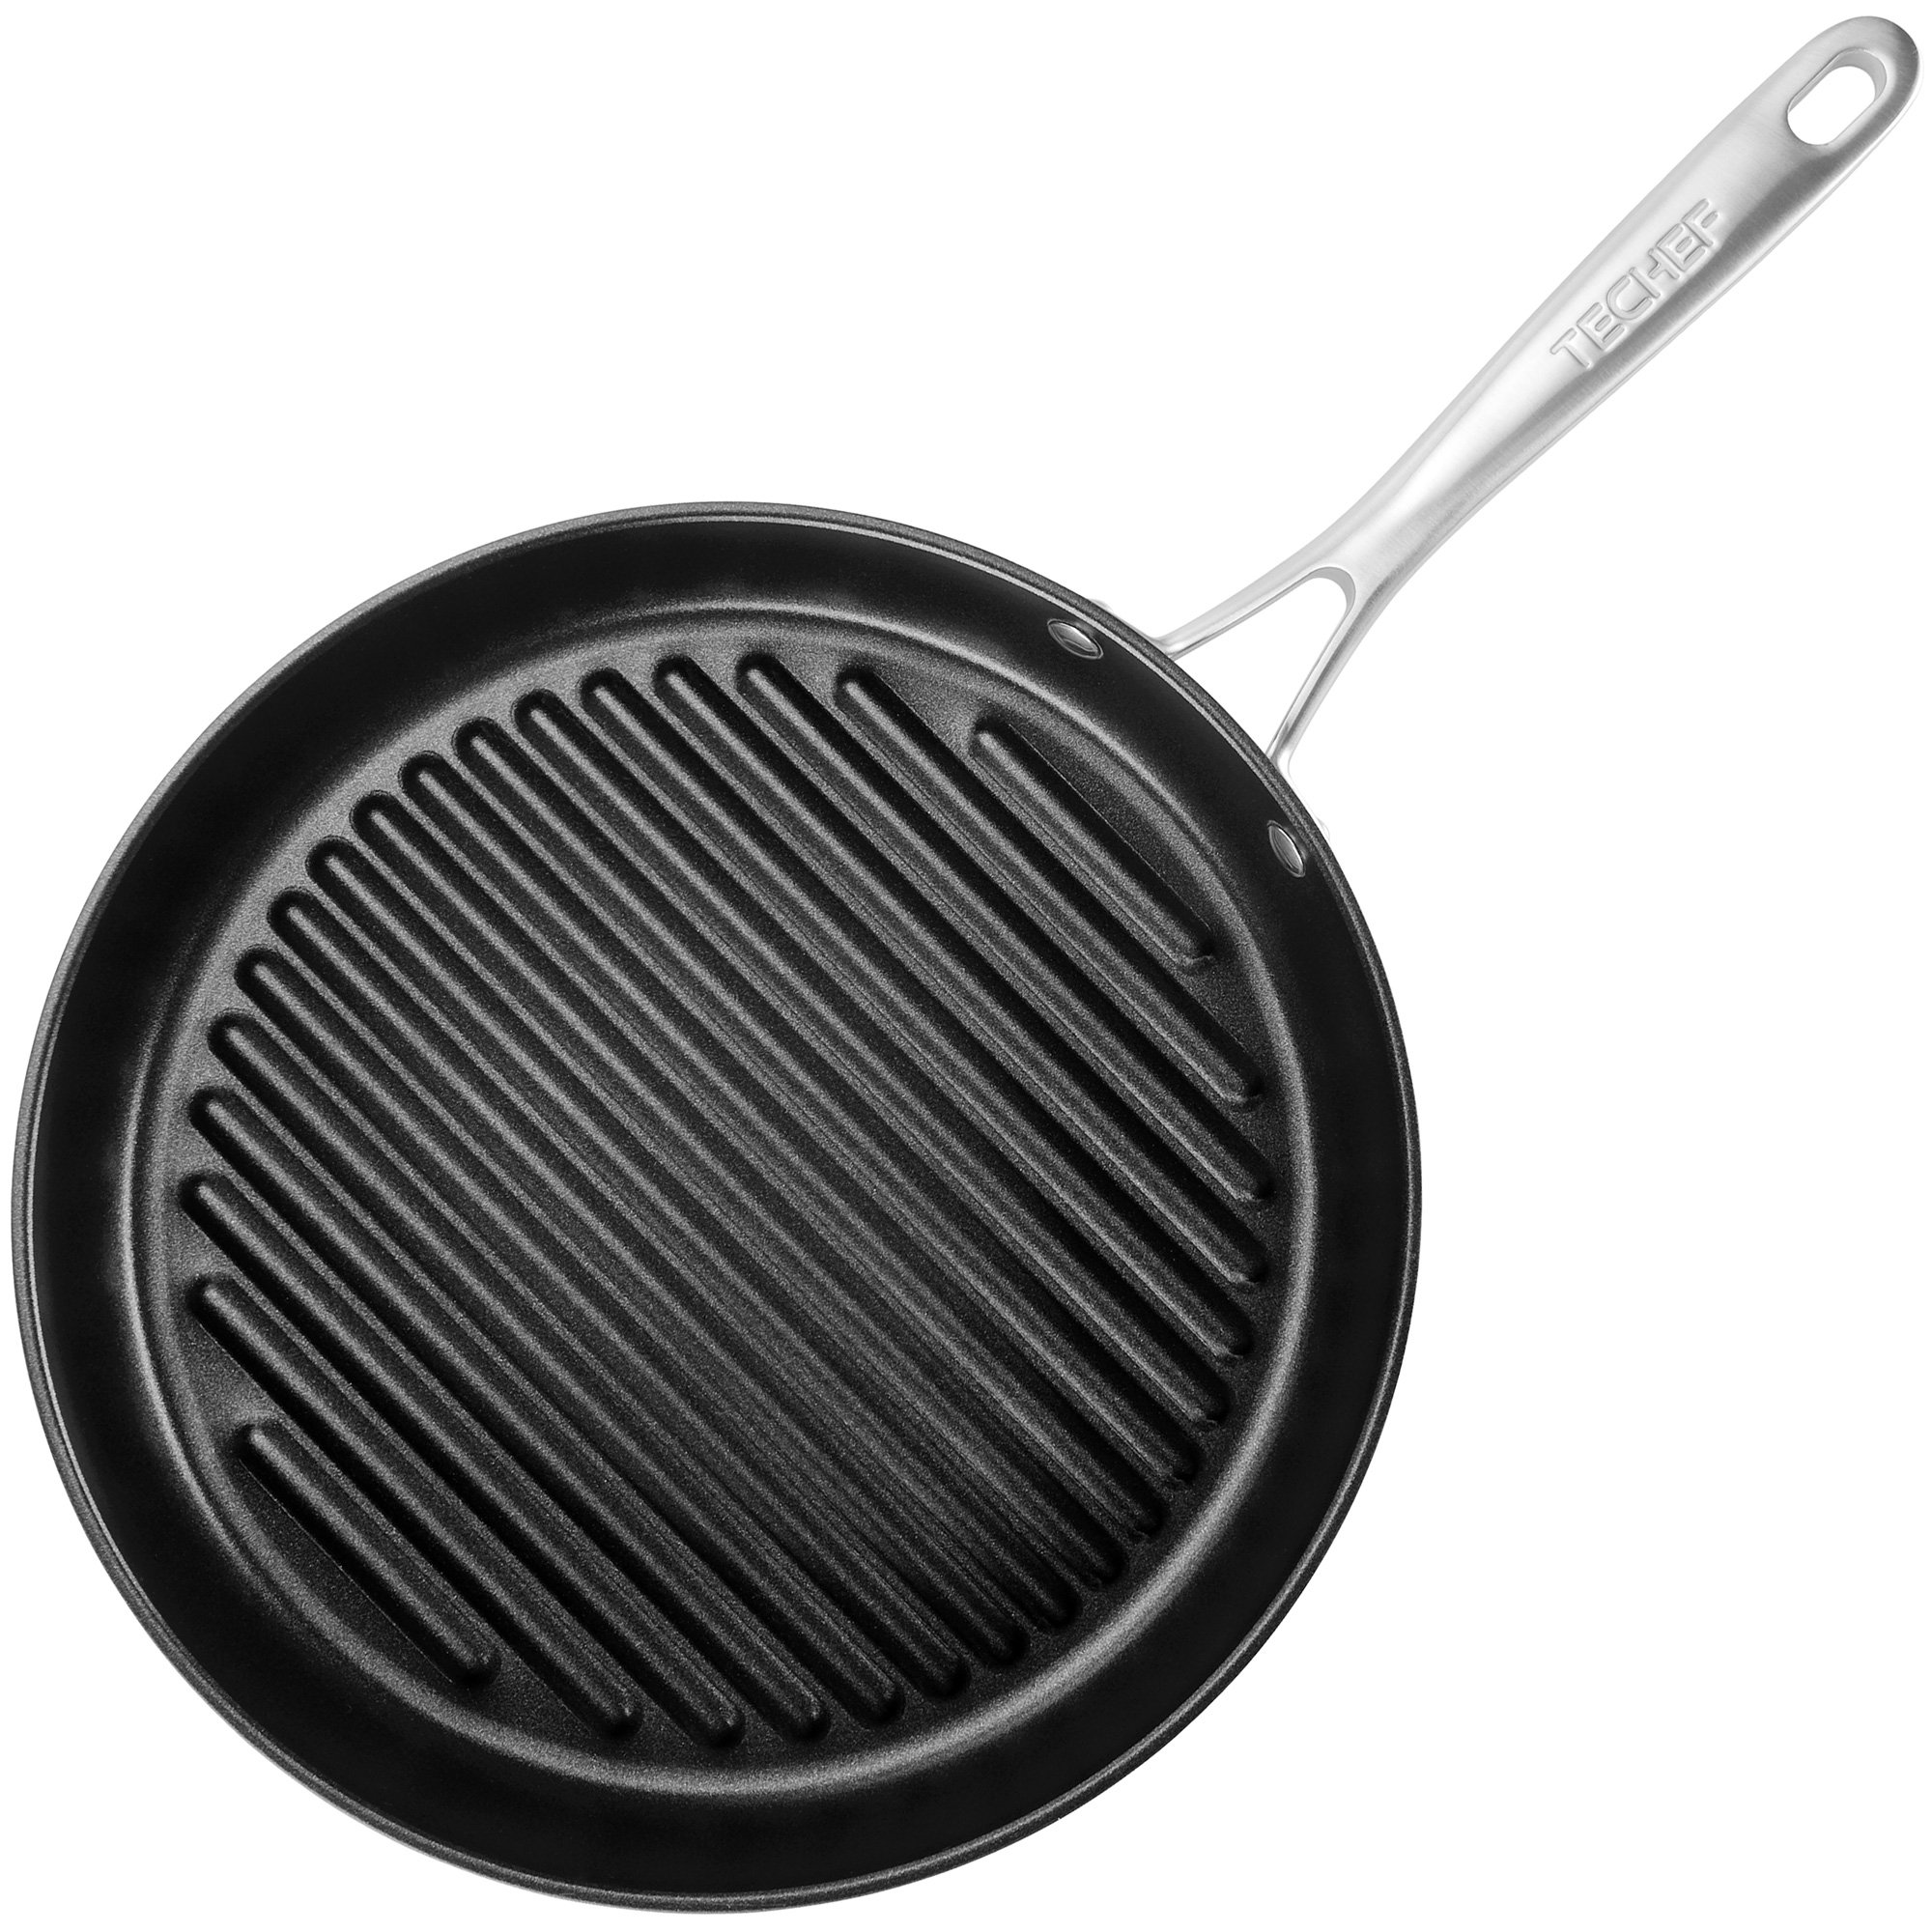 TECHEF OXGP Onyx Collection 12'' Grill Pan New Teflon Platinum Non-Stick Coating (PFOA Free), Made in Korea'', Black